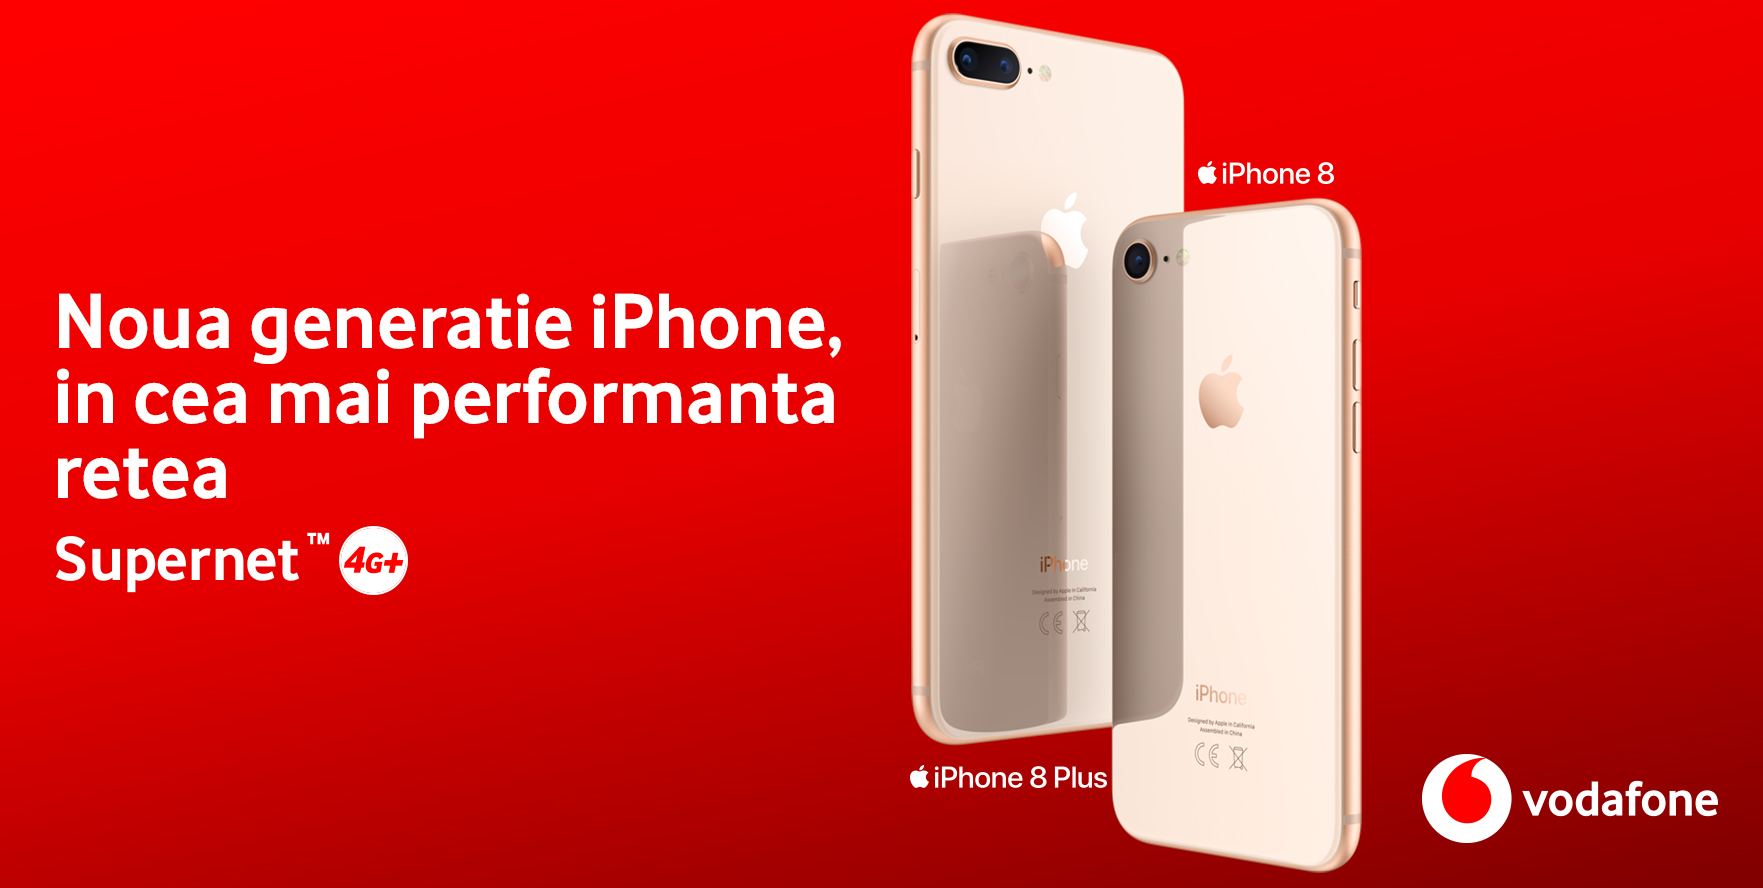 iPhone 8 si iPhone 8 Plus sunt disponibile in oferta Vodafone Romania